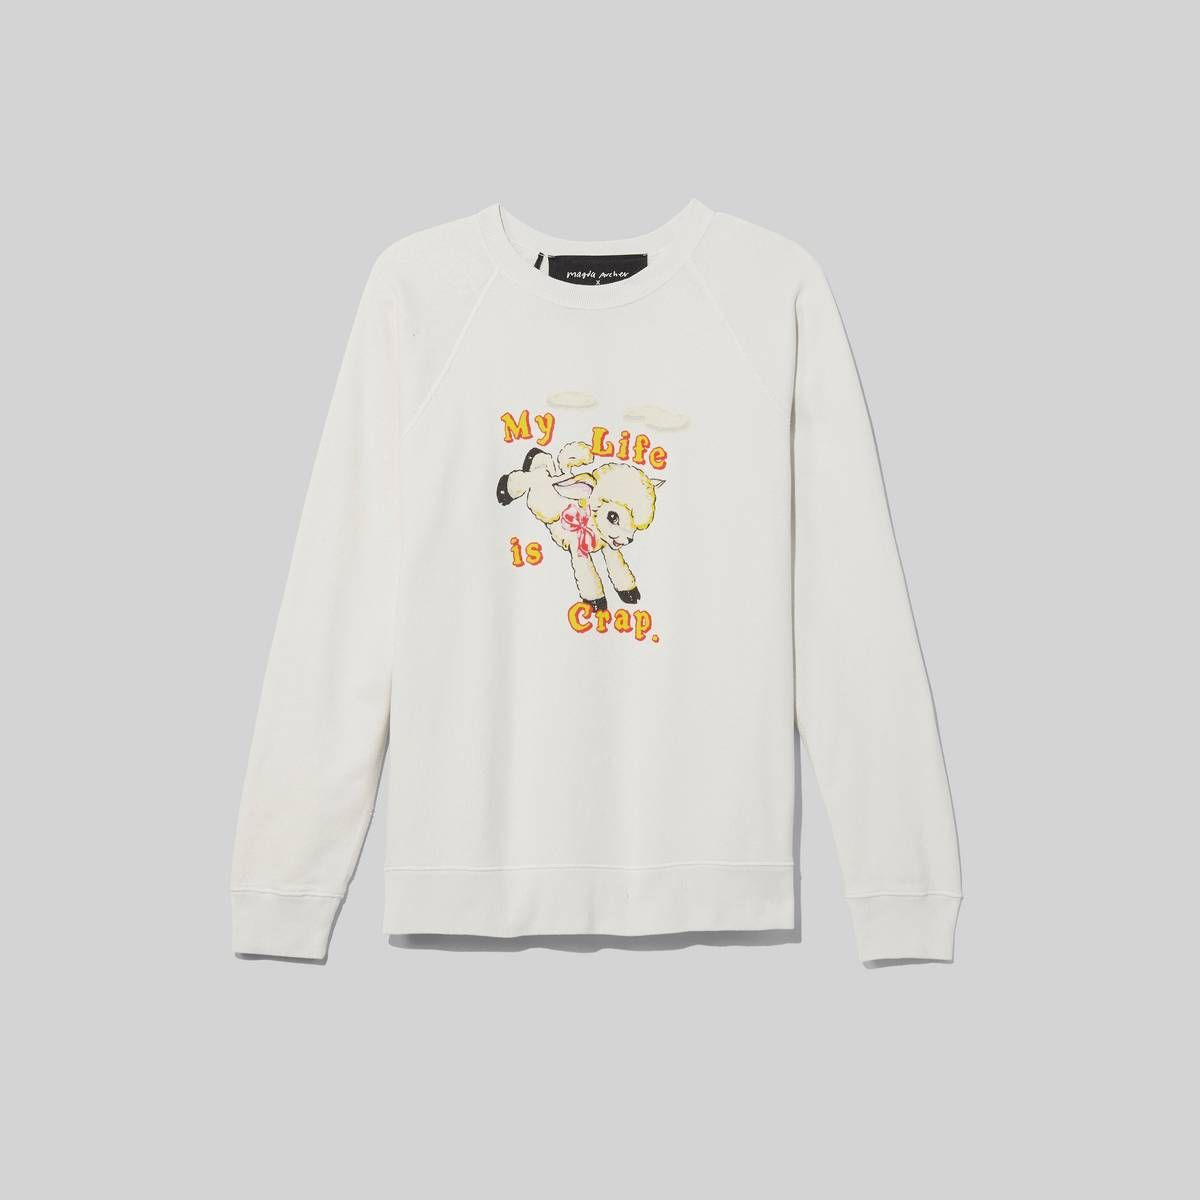 Marc Jacobs Women S Magda Archer X The Men S Collaboration Sweatshirt In Vintage White Size Small Sweatshirts Marc Jacobs Jacobs [ 1200 x 1200 Pixel ]